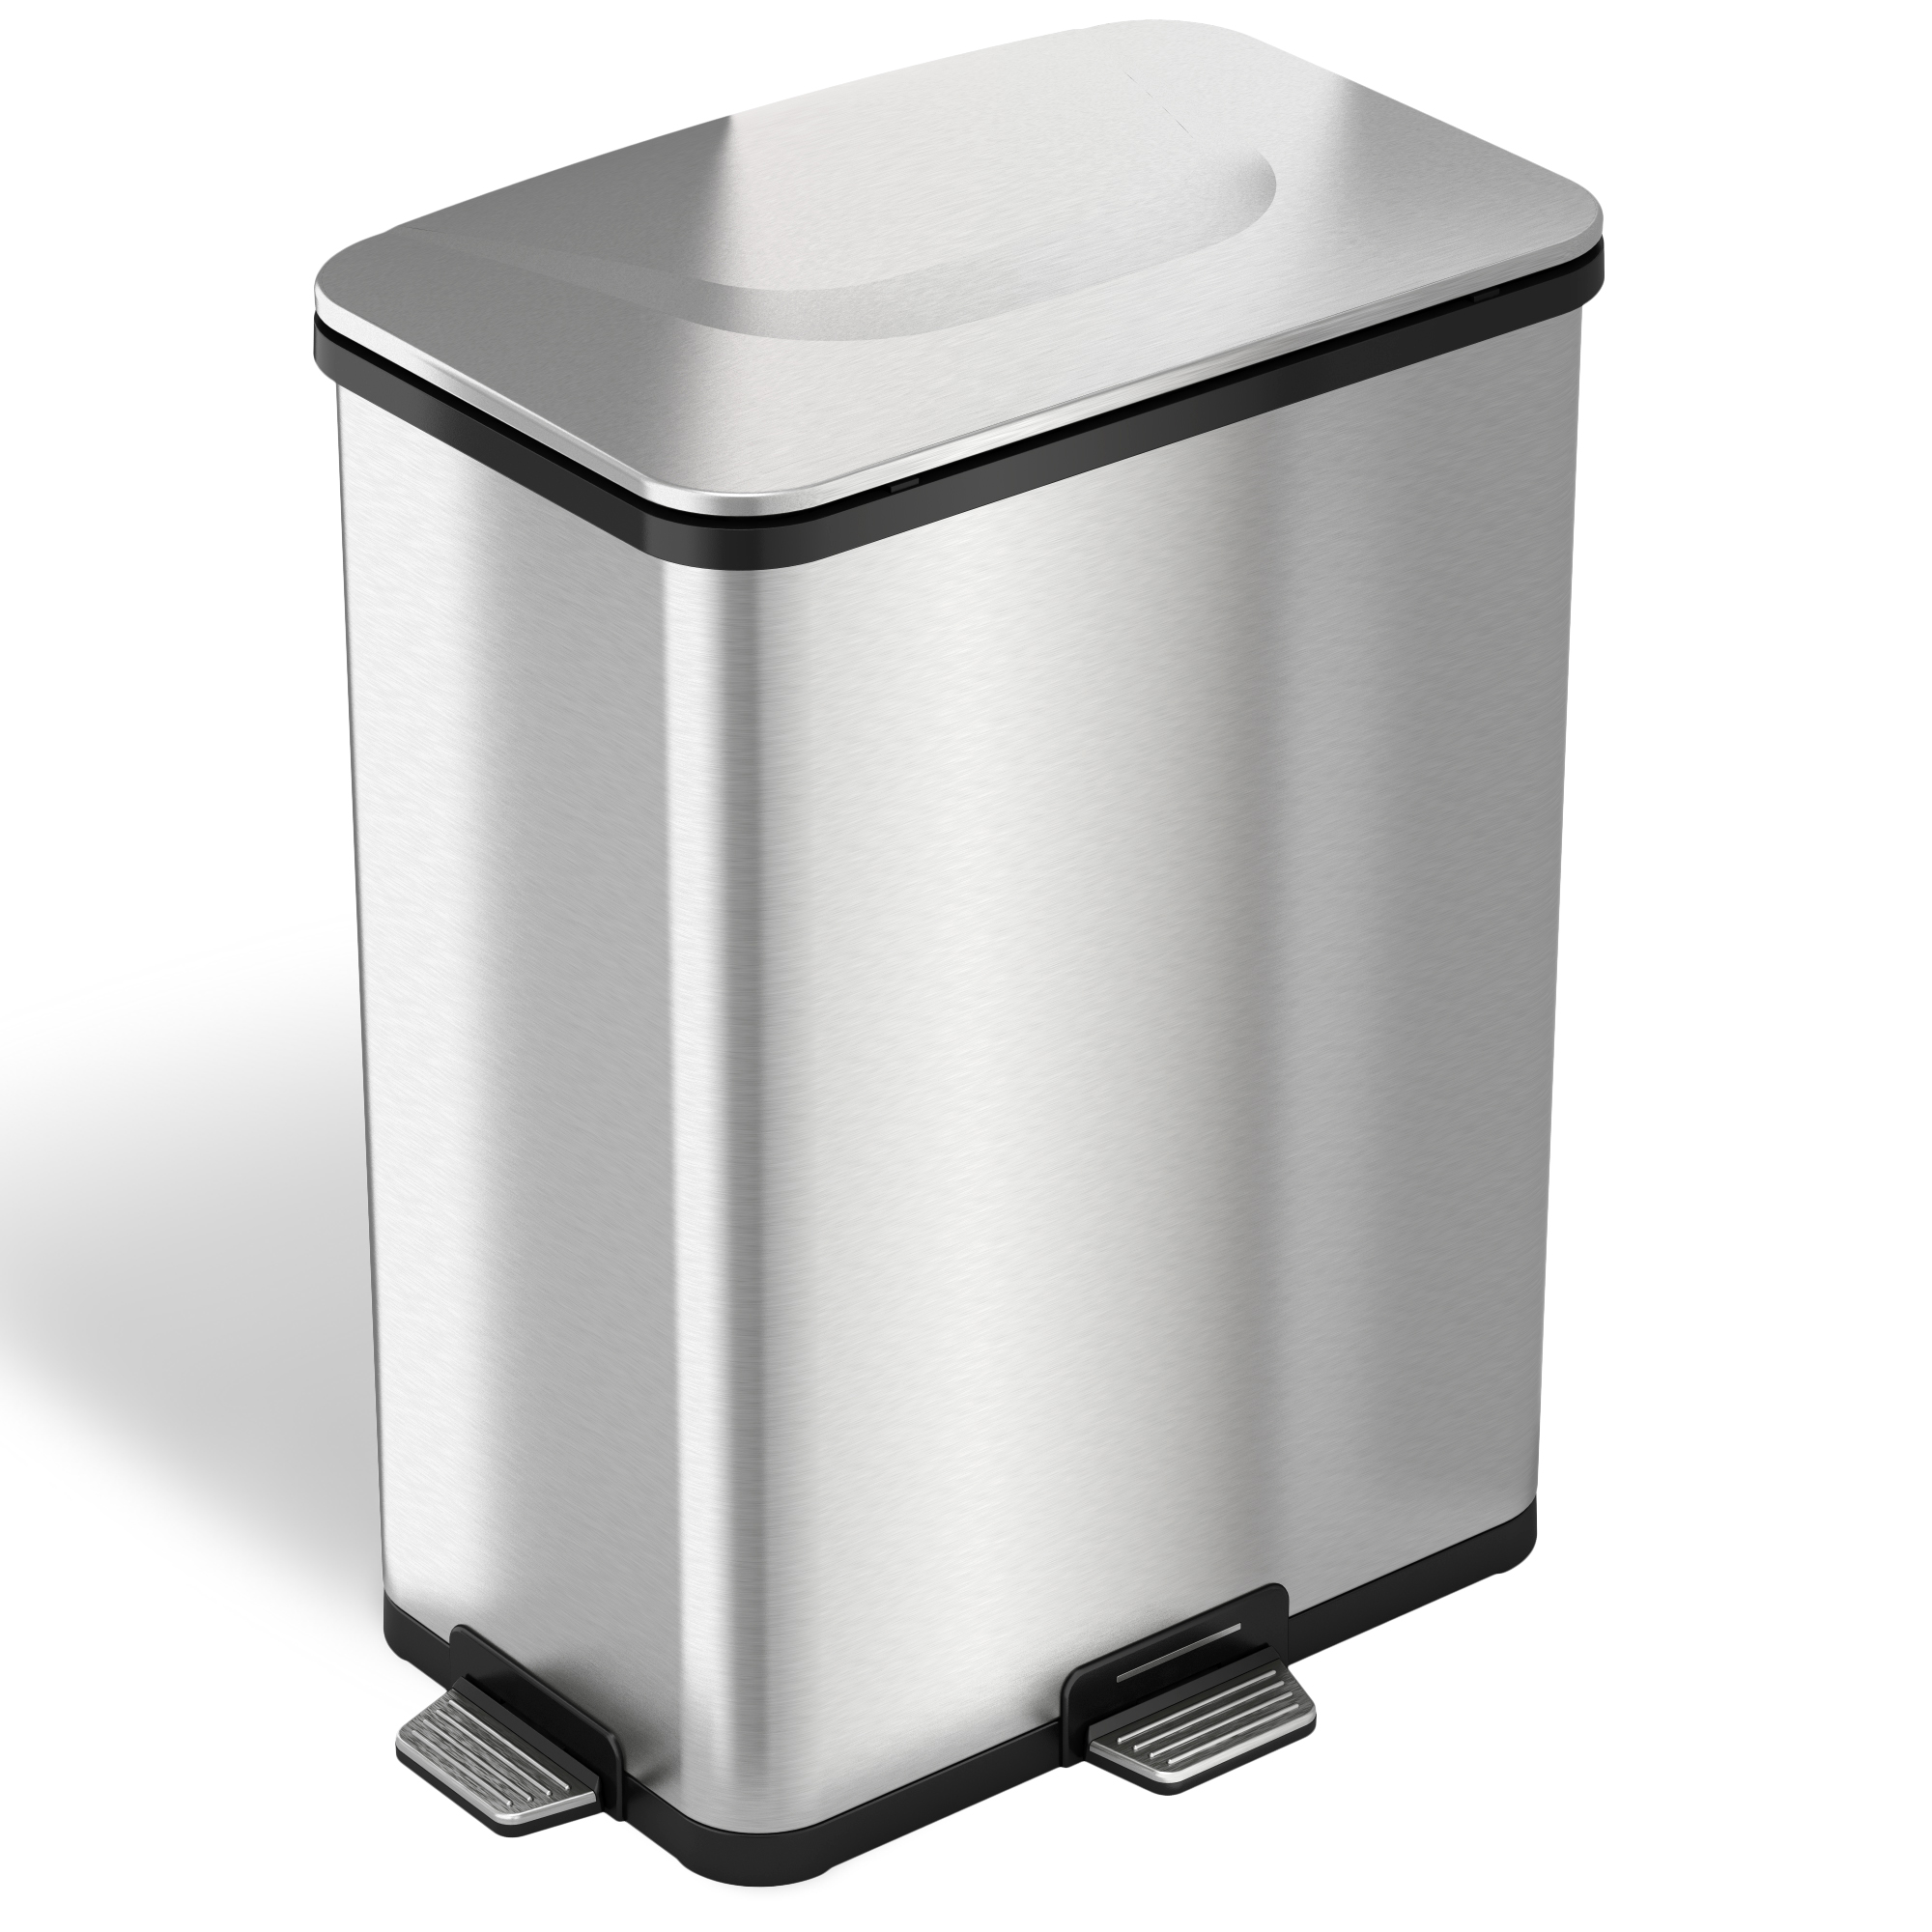 Boy stepping on garbage can pedal clipart picture library Factory Direct: Kitchen Trash Can With Lid For Office Bedroom Step ... picture library